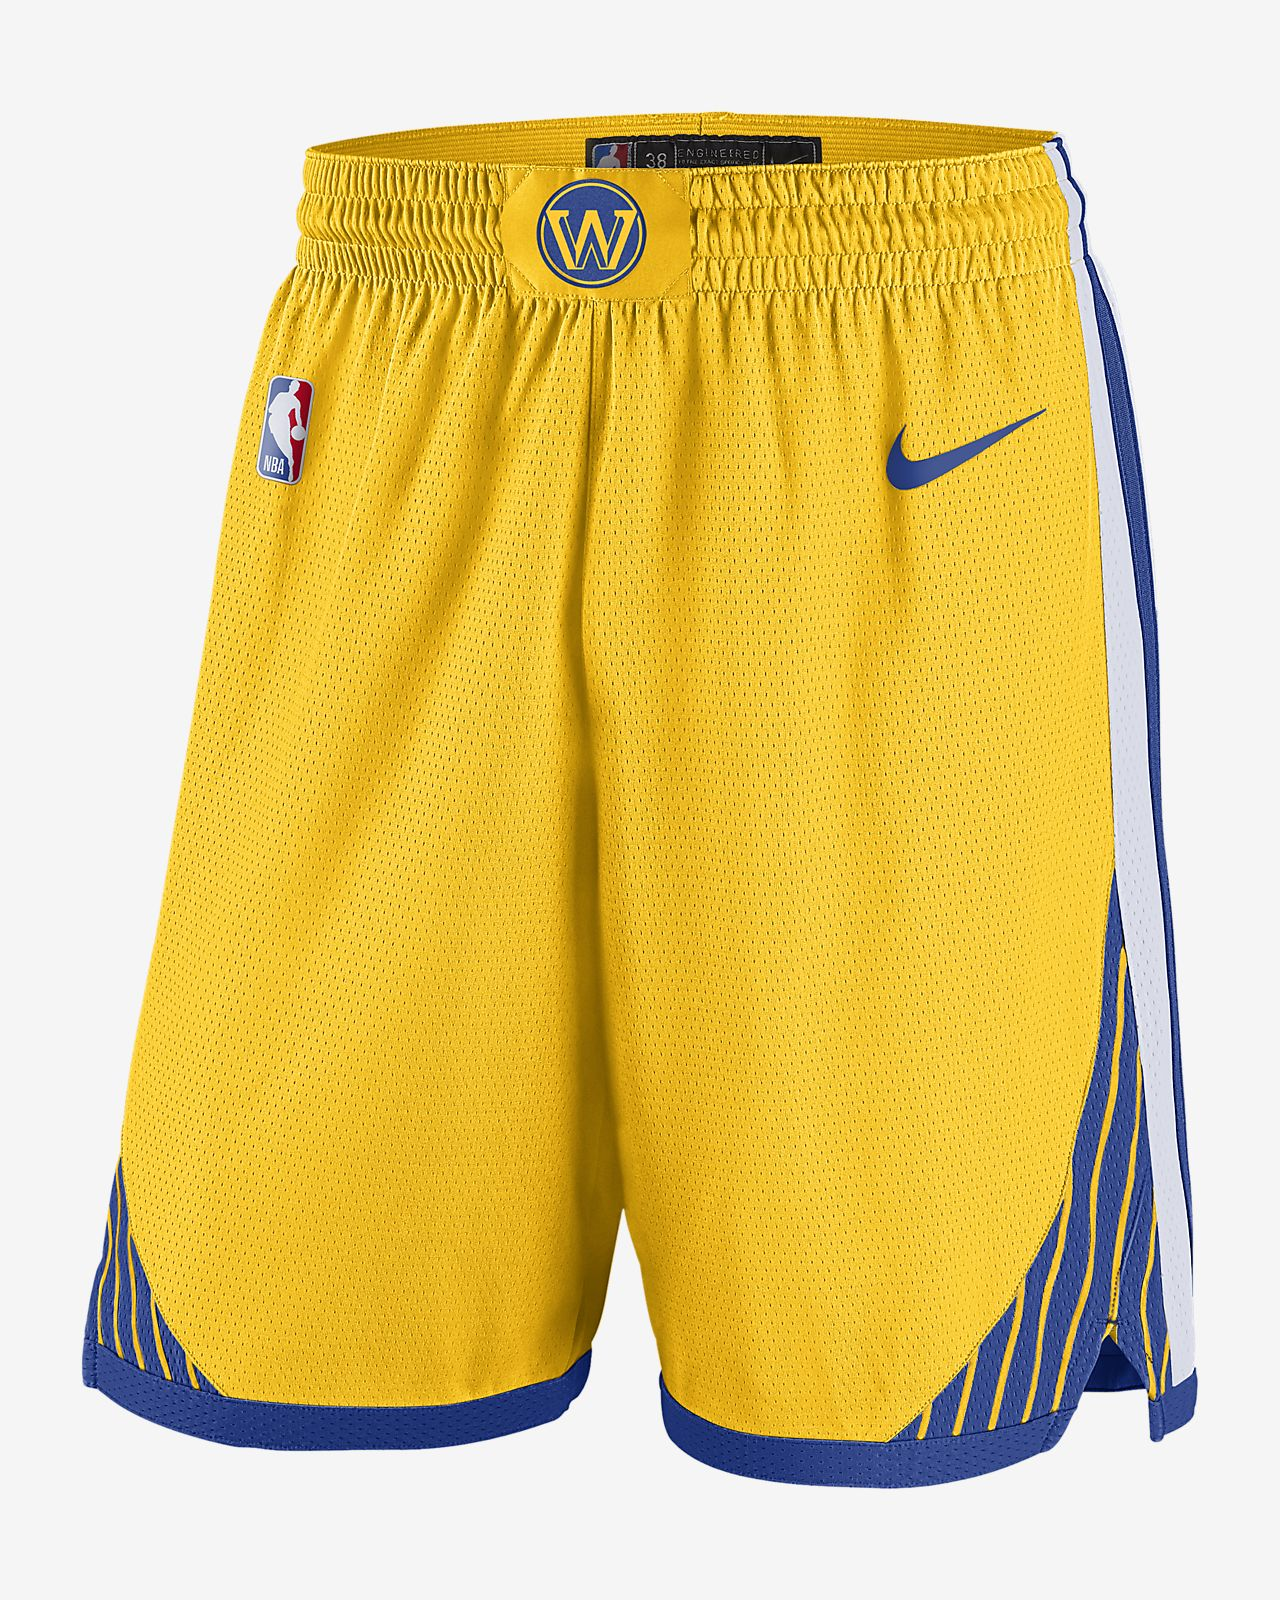 Short NBA Golden State Warriors Nike Statement Edition Swingman pour Homme